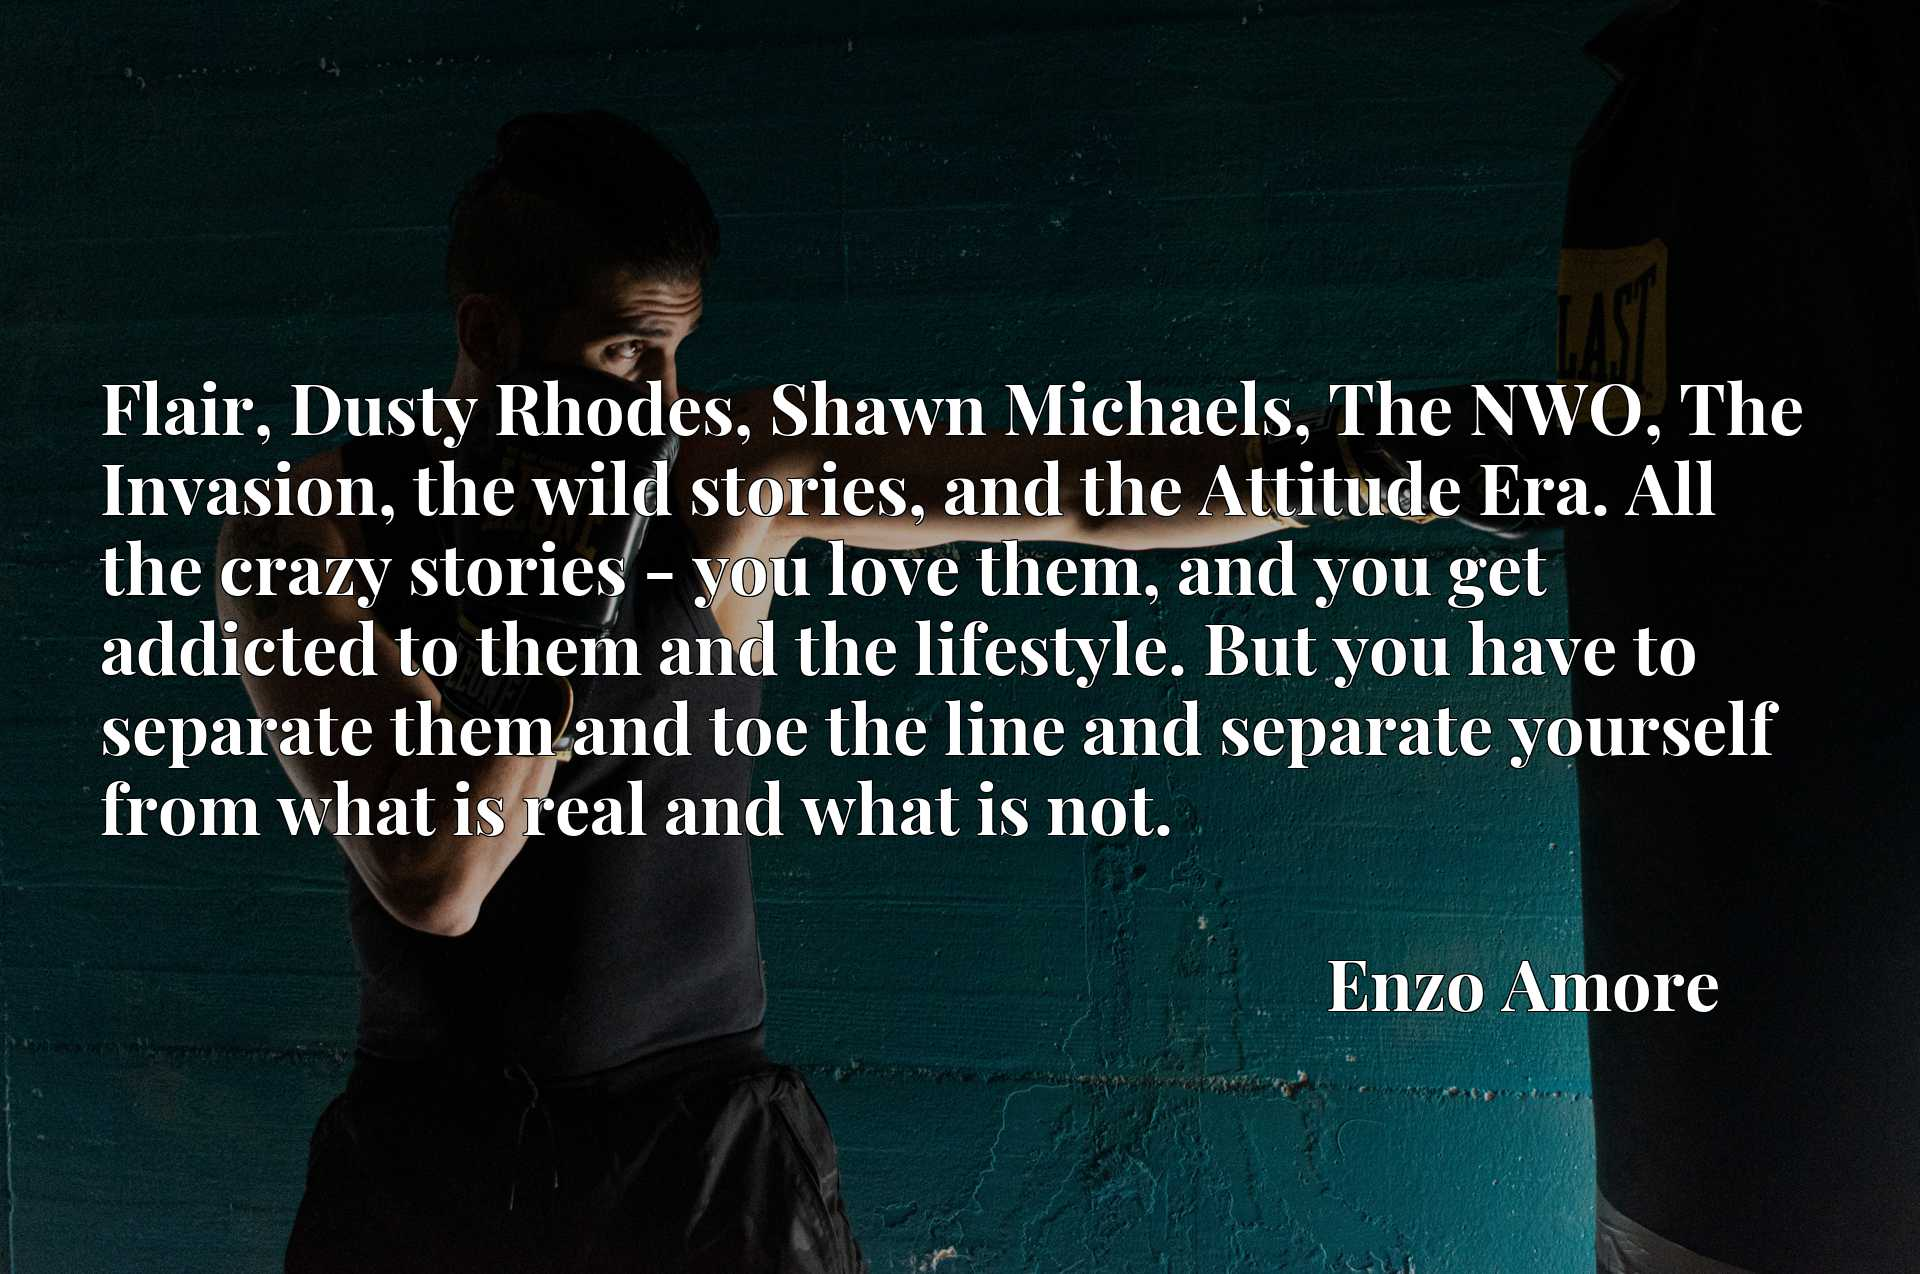 Flair, Dusty Rhodes, Shawn Michaels, The NWO, The Invasion, the wild stories, and the Attitude Era. All the crazy stories - you love them, and you get addicted to them and the lifestyle. But you have to separate them and toe the line and separate yourself from what is real and what is not.